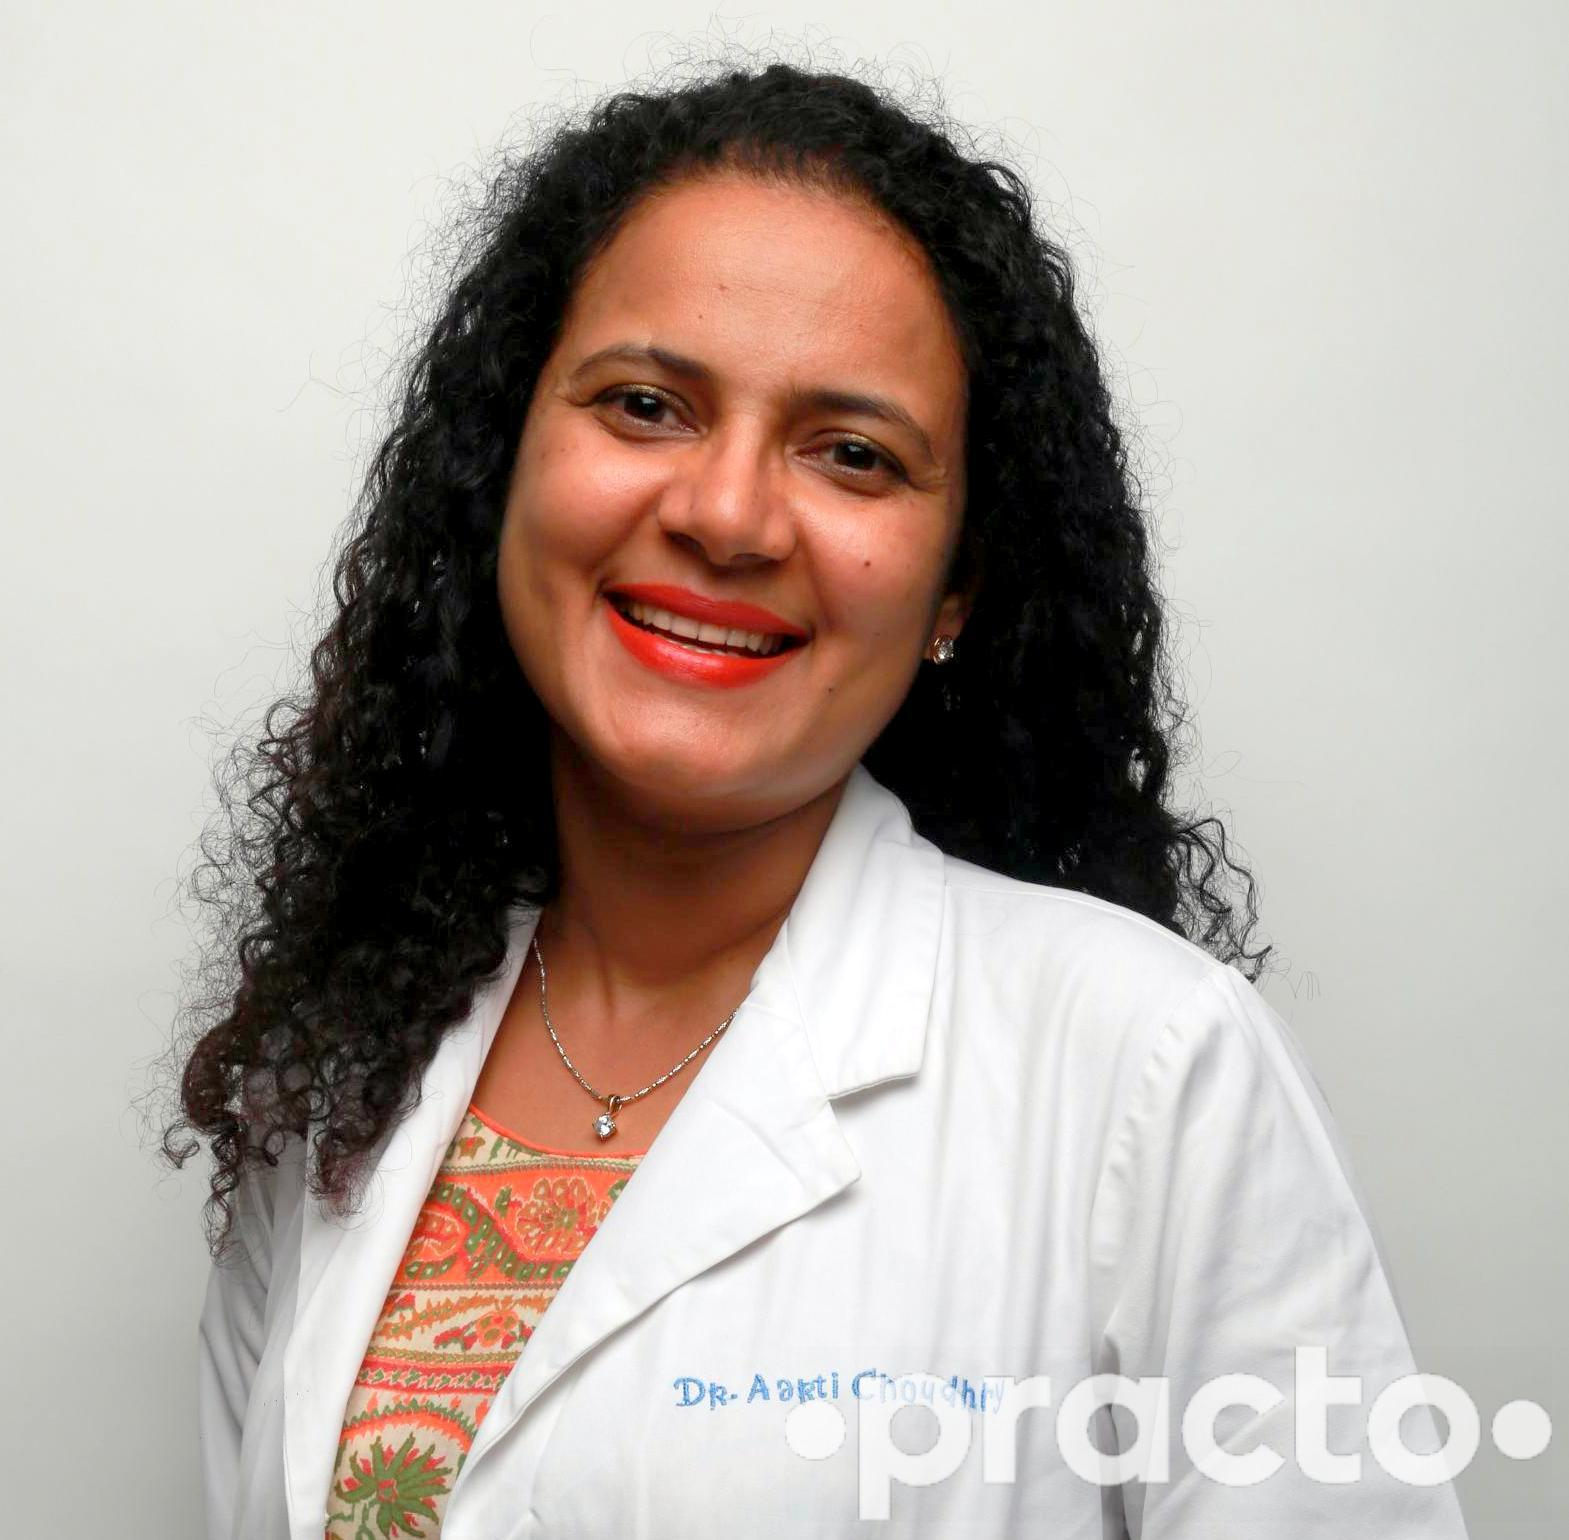 Dr. Aarti Surbhit Choudhry - Ophthalmologist